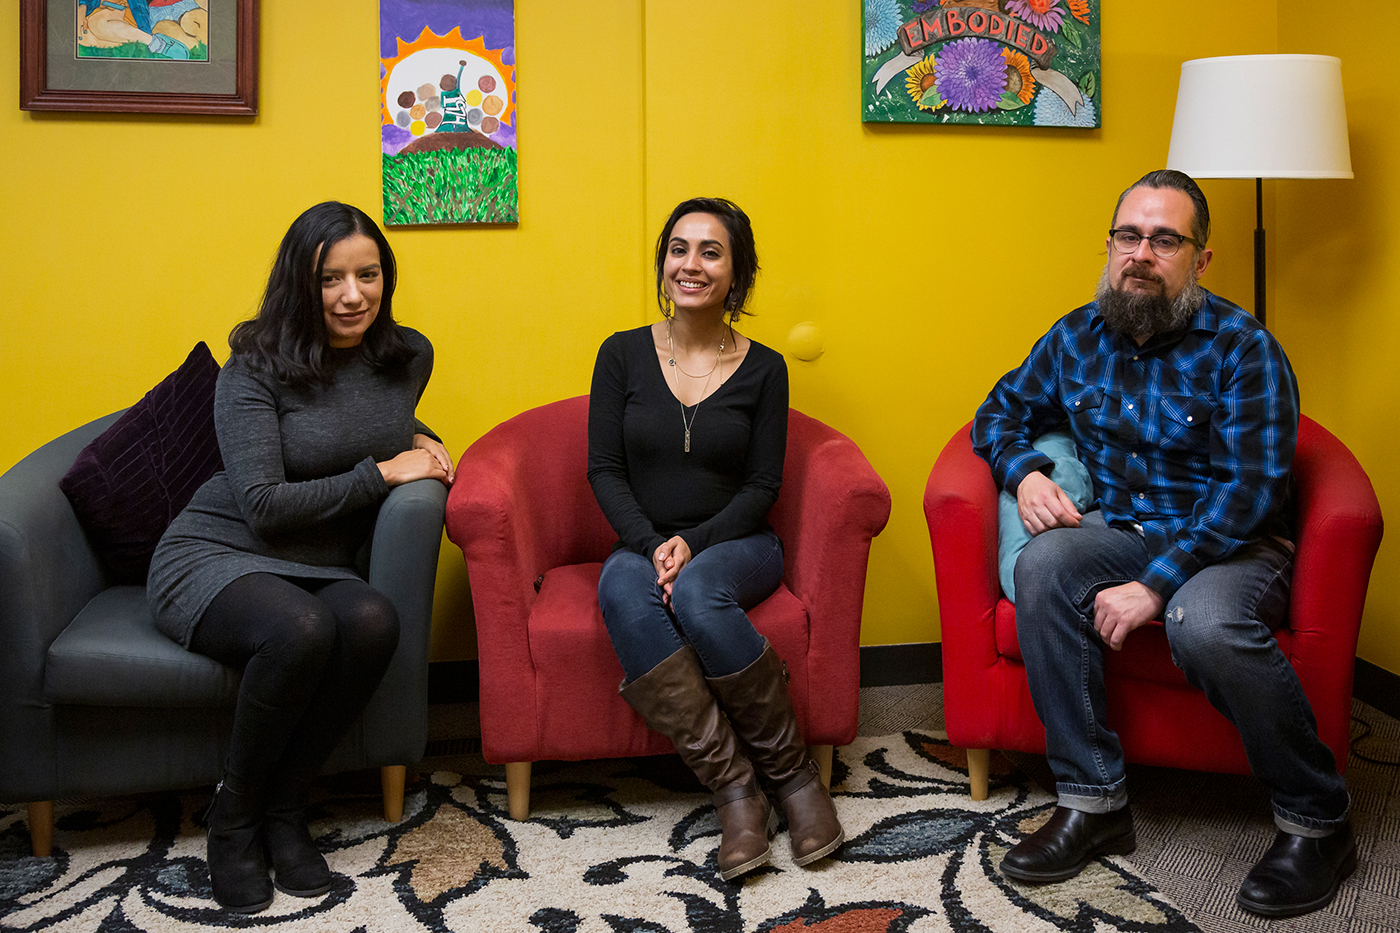 (L–R) Stephany Murguia, Megan Asadian and Jorge Barraza comprise a portion of the Rape Recovery Center staff, and work toward the goal of eradicating sexual assault through outreach and education.